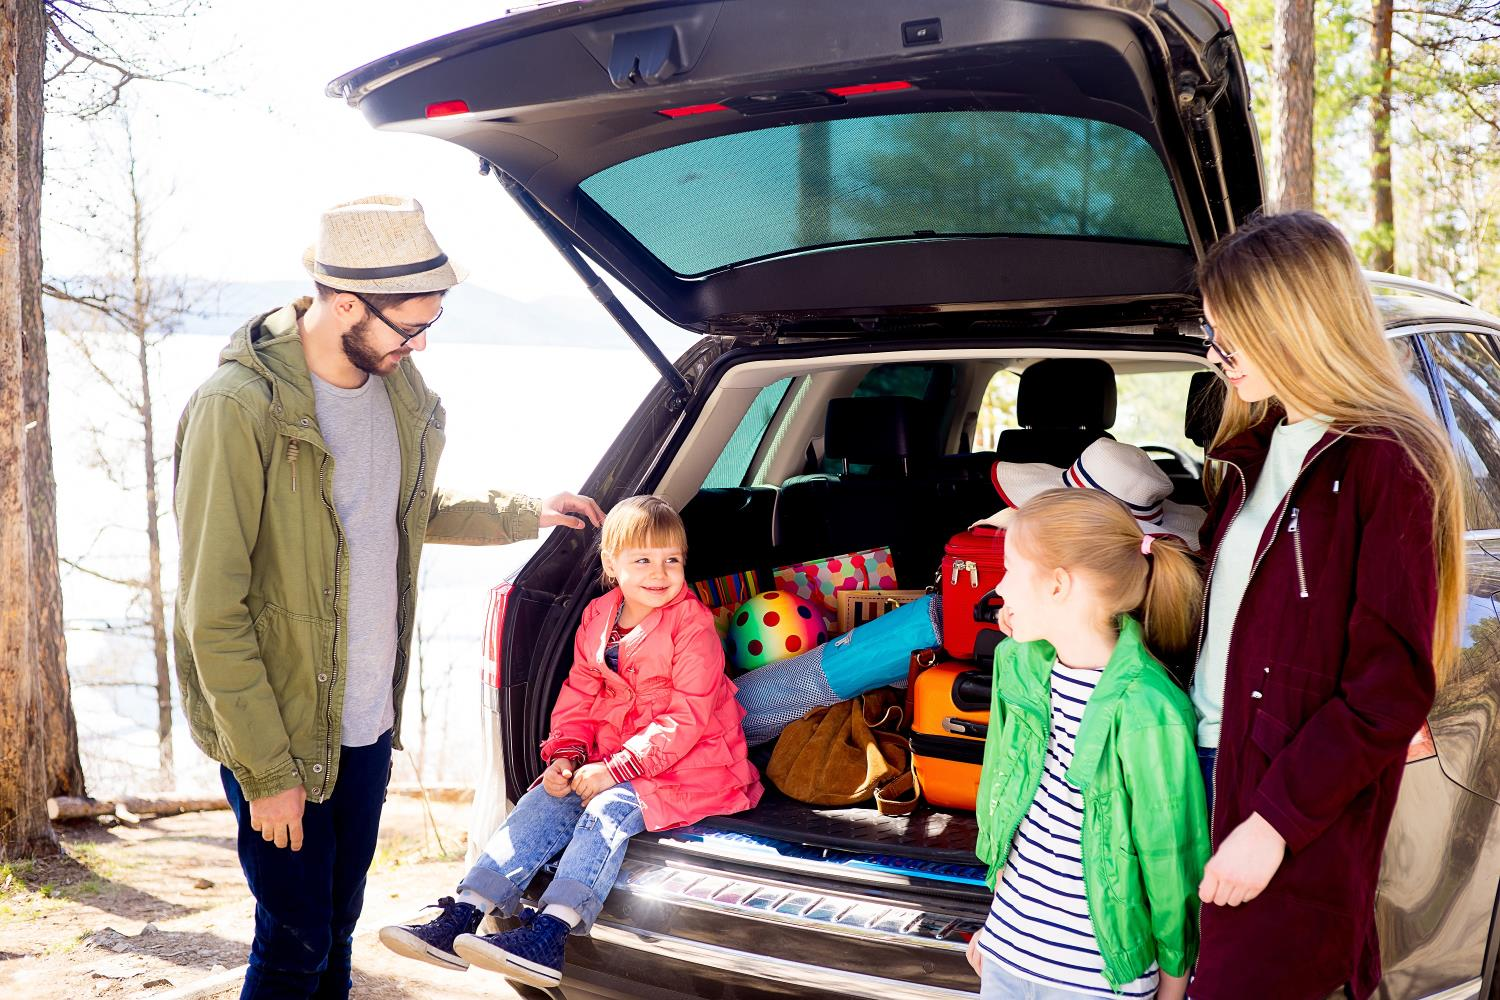 Family Friendly Was The Key Motivator For UK Car Buyers in 2018